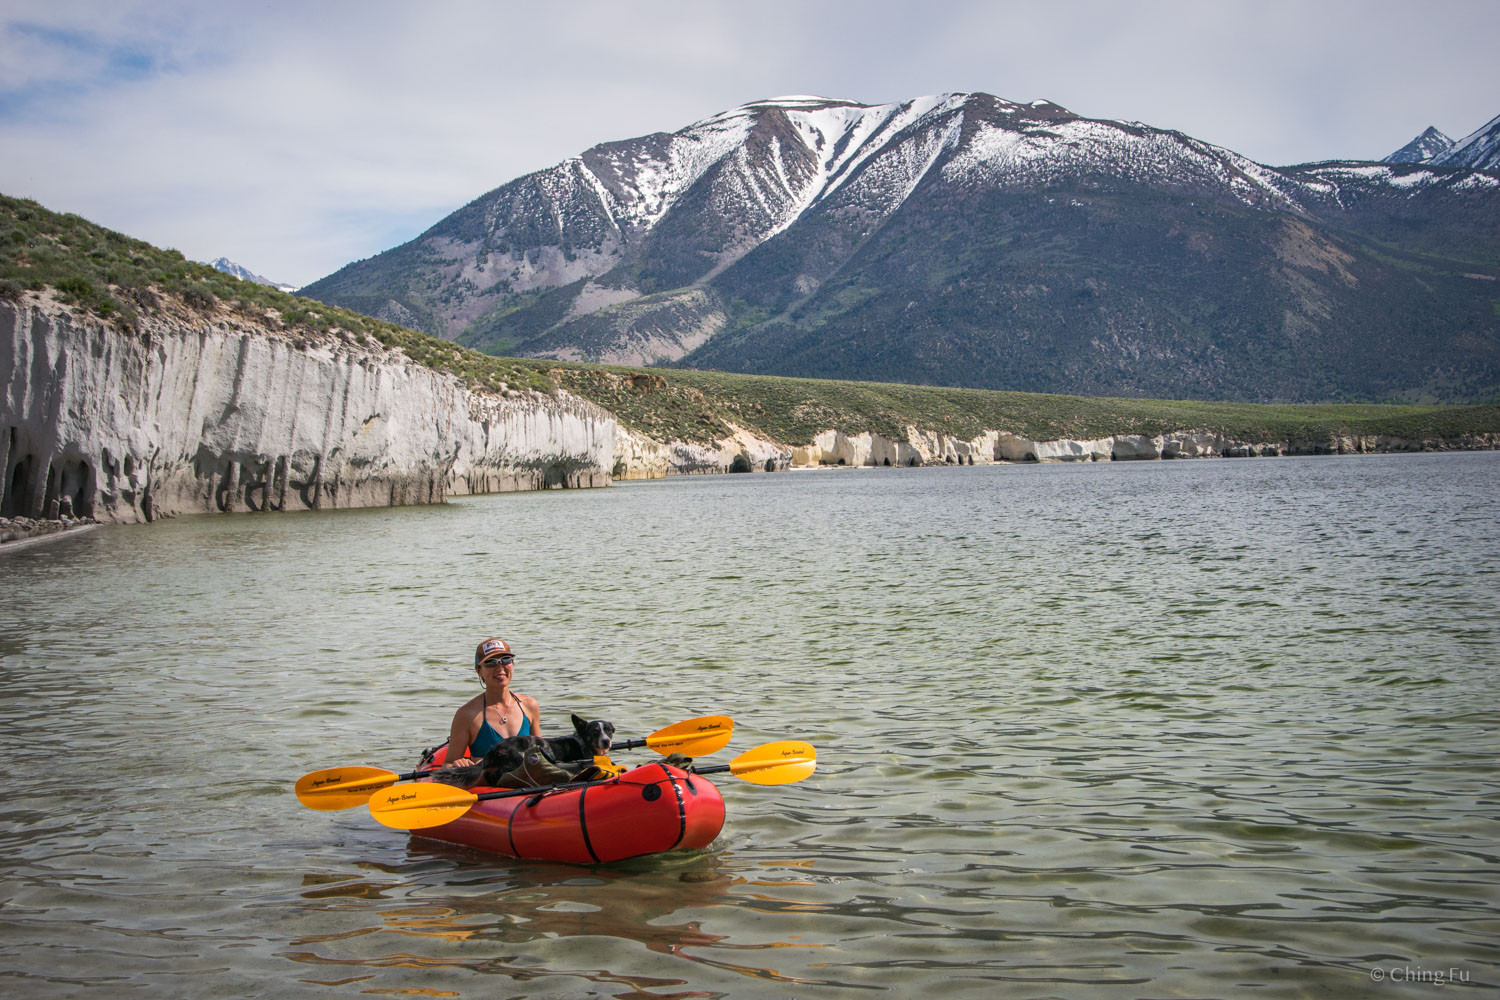 Paddling on Crowley Lake.